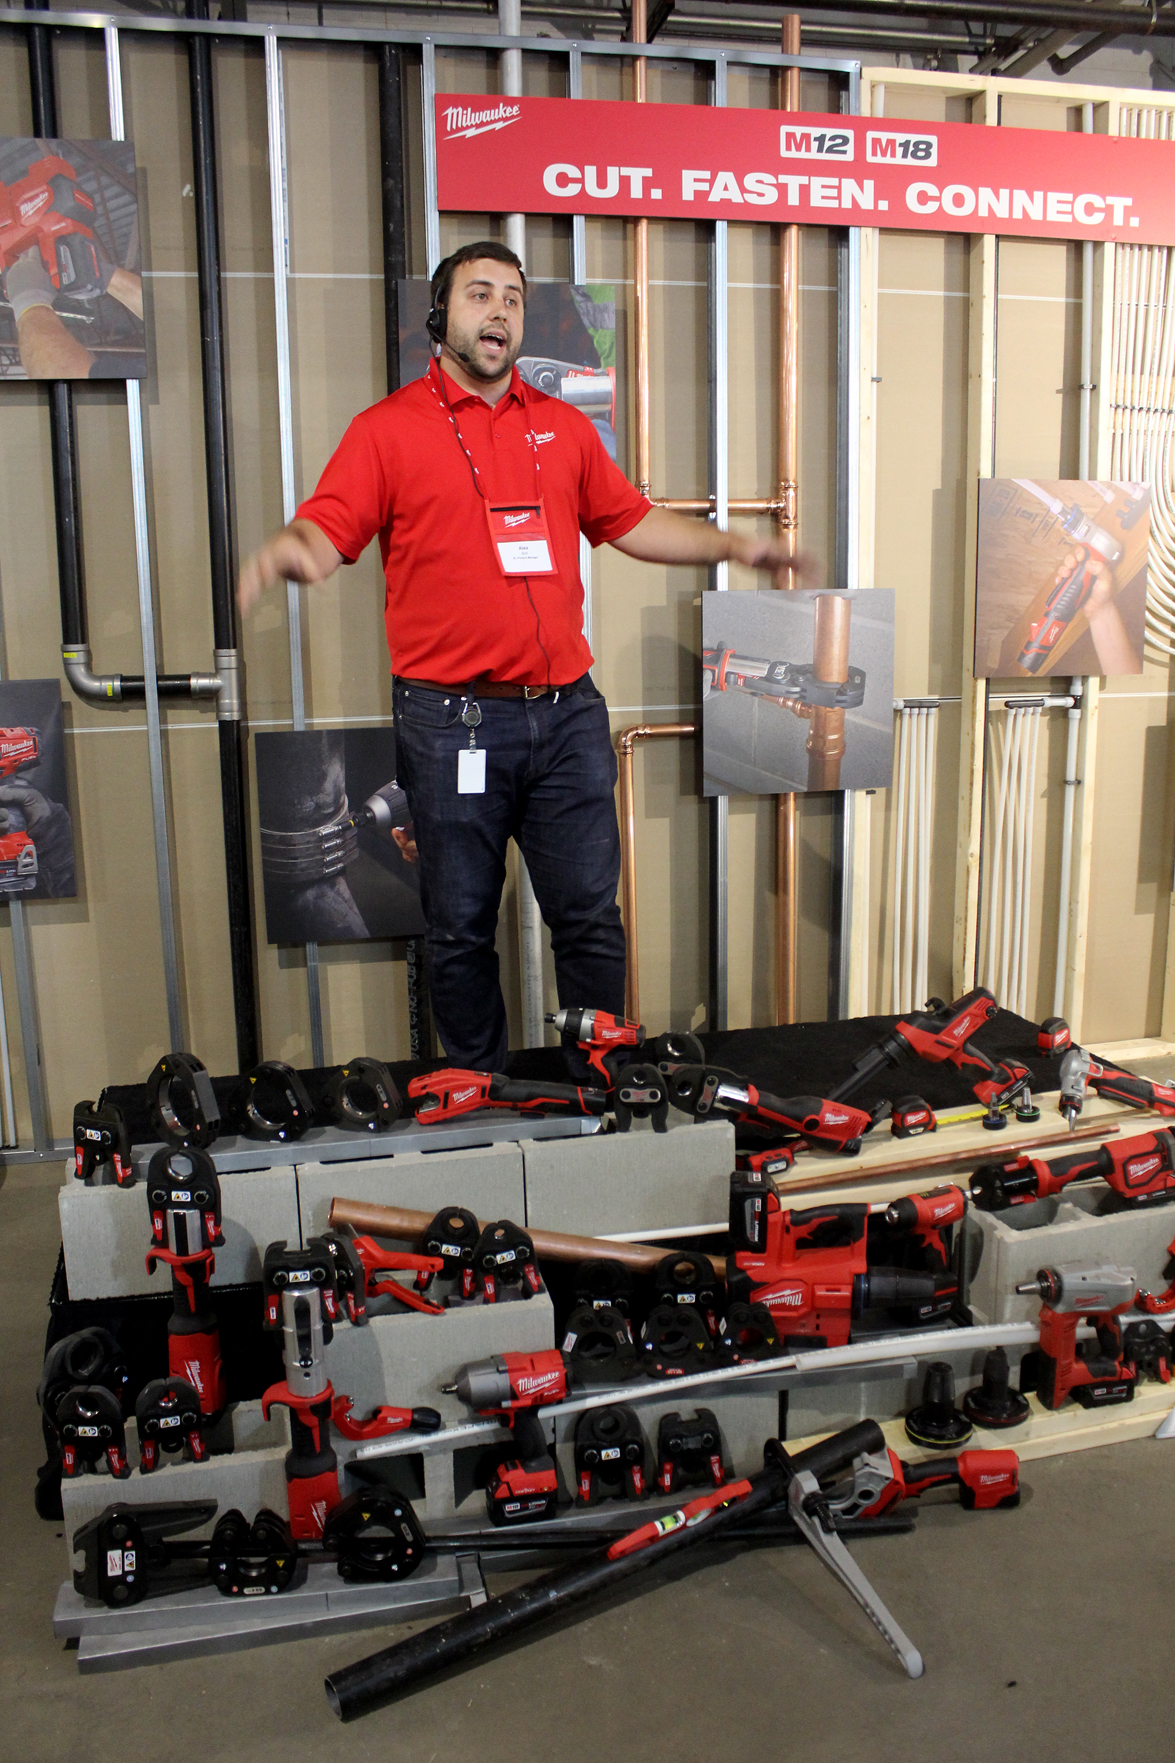 Alex Boll, senior product manager, talks to contractors about some of the plumbing-specific applications for Milwaukee Tool's M12- and M18-powered products.